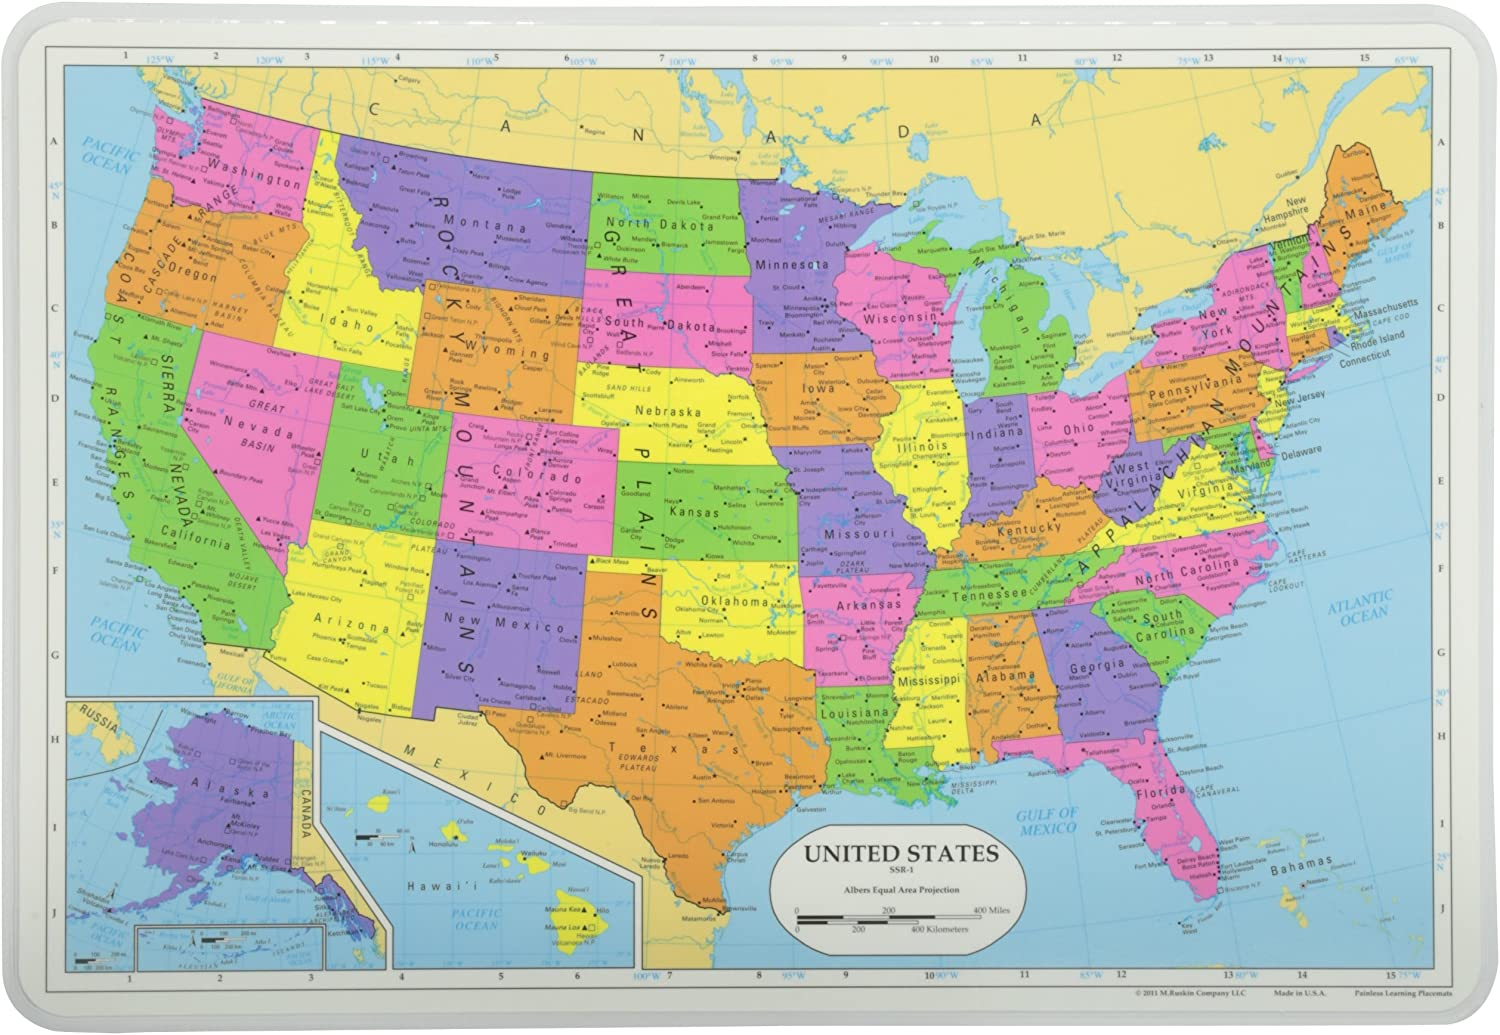 United States Map - mat